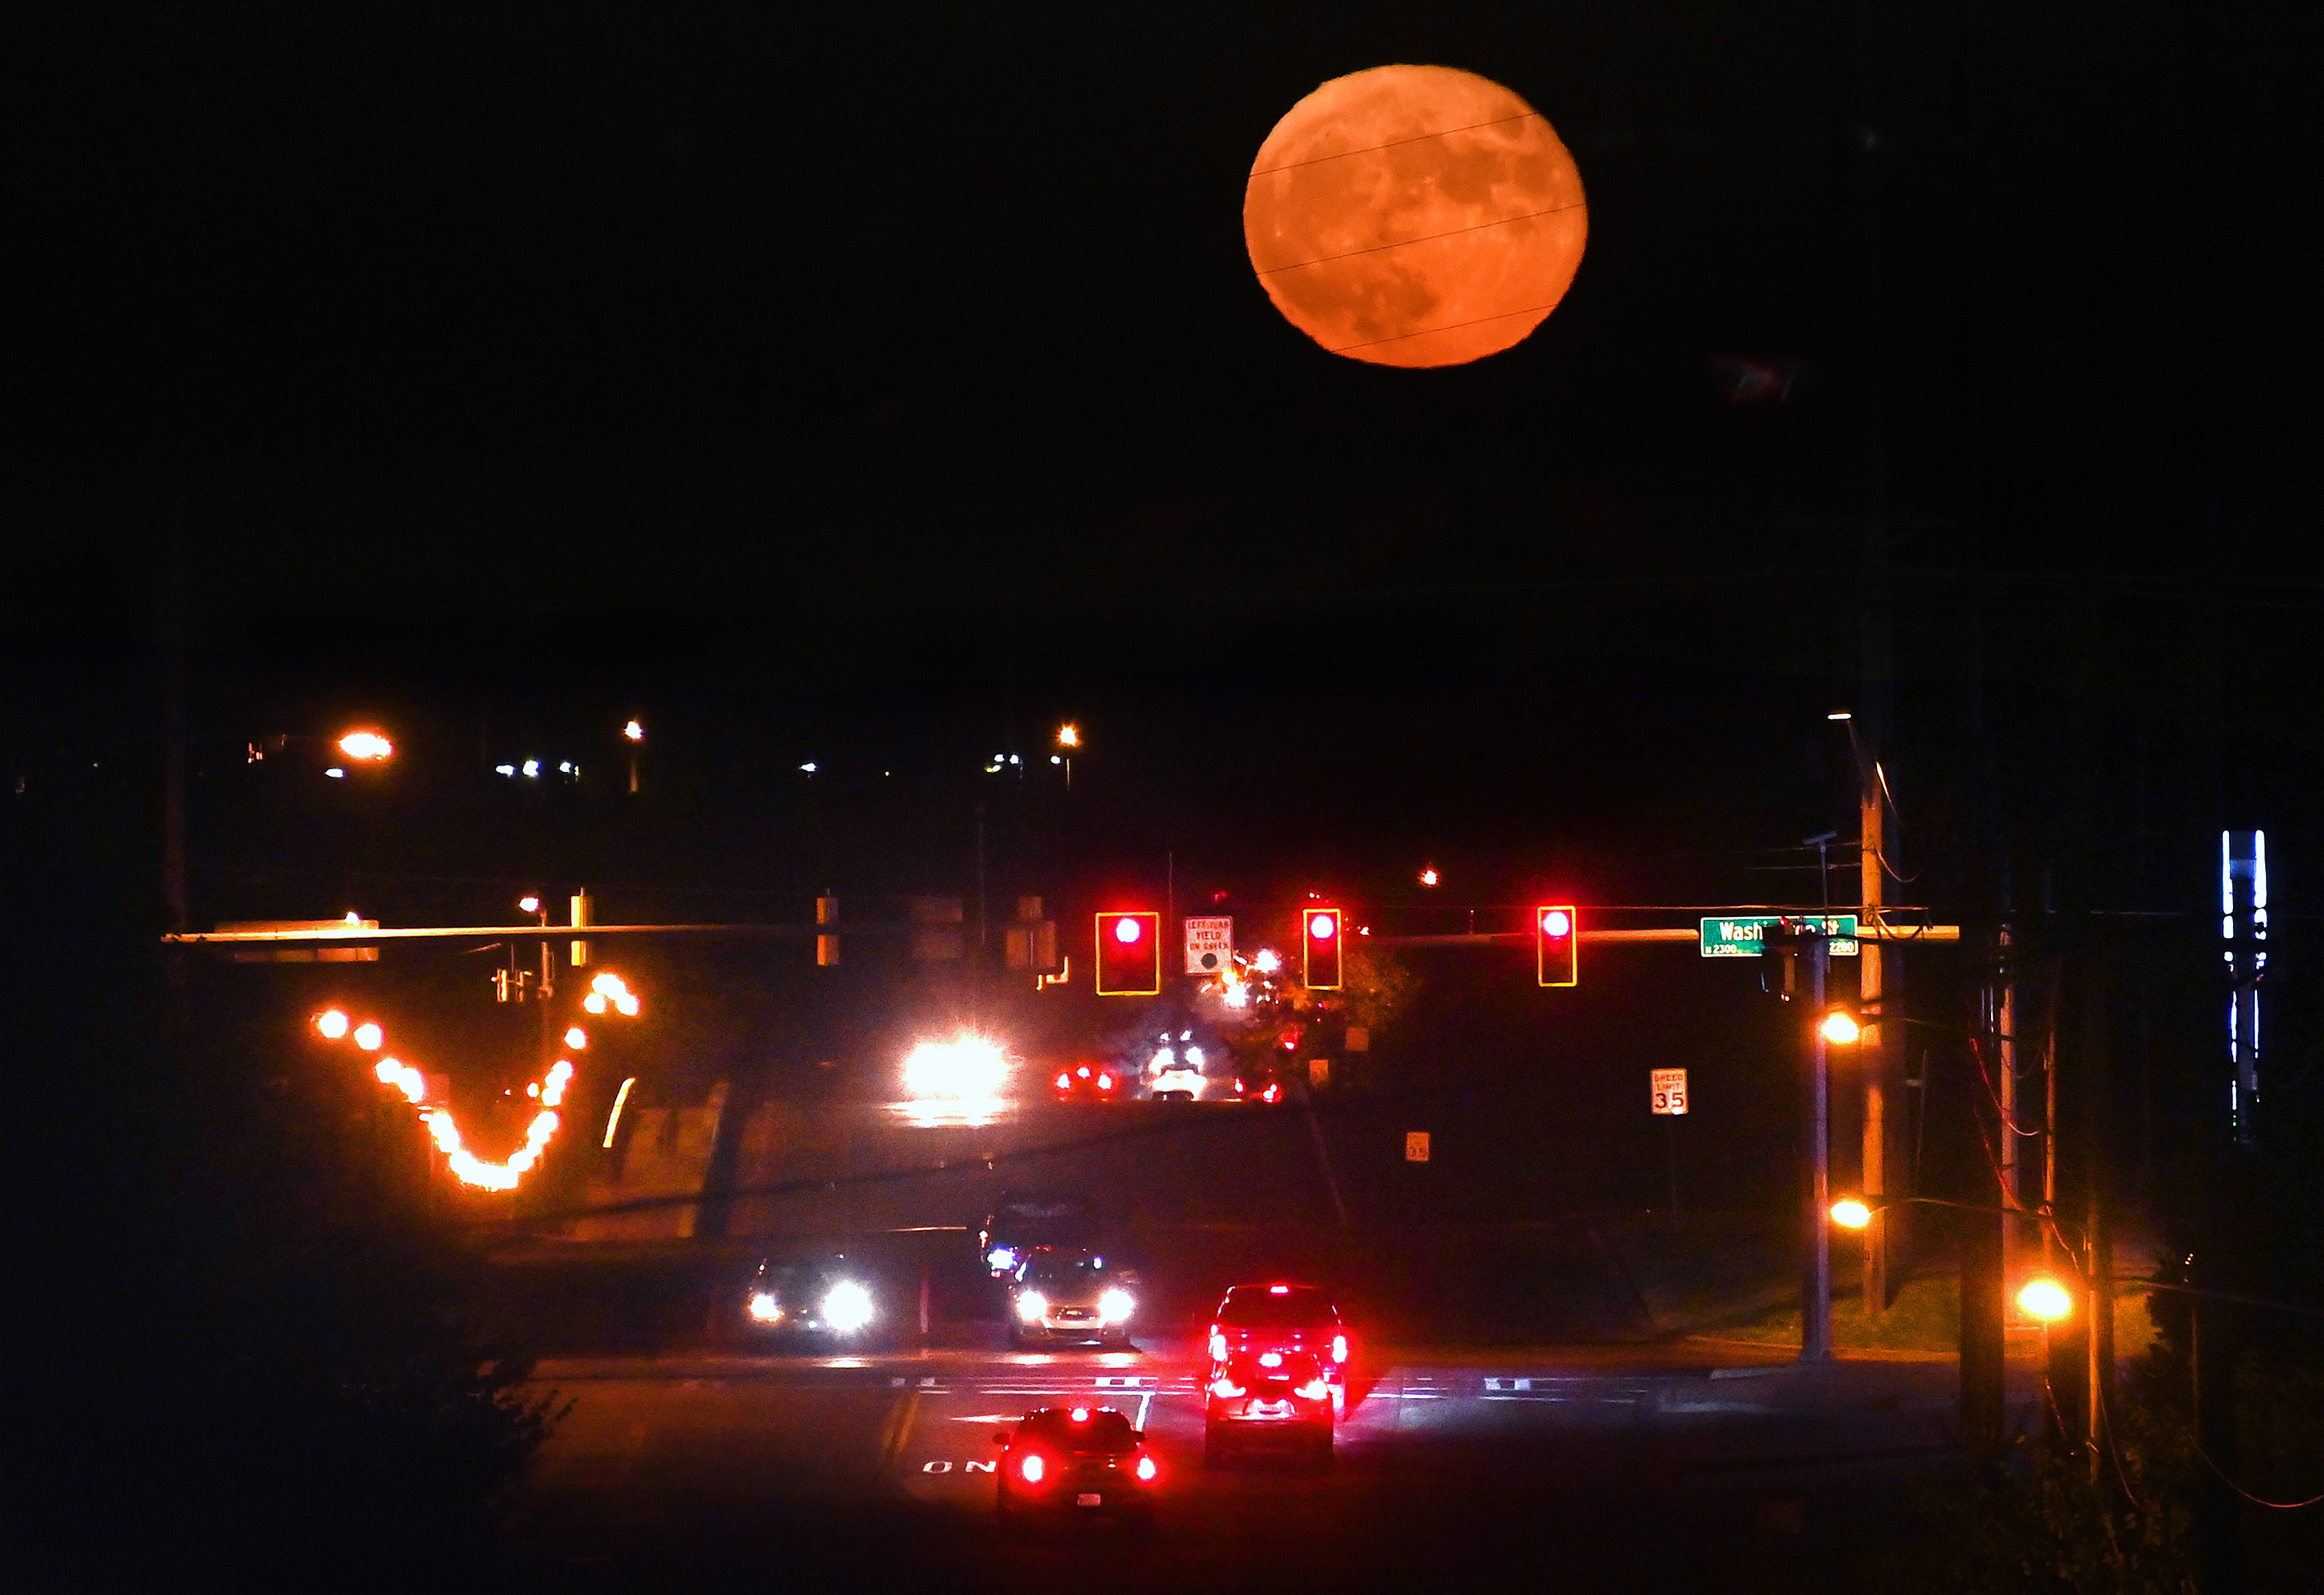 A nearly full moon rises over the main drag that leads to Stillwater Medical Center in Stillwater, Okla., Sept.21, 2021. MUST CREDIT: Washington Post photo by Michael S. Williamson